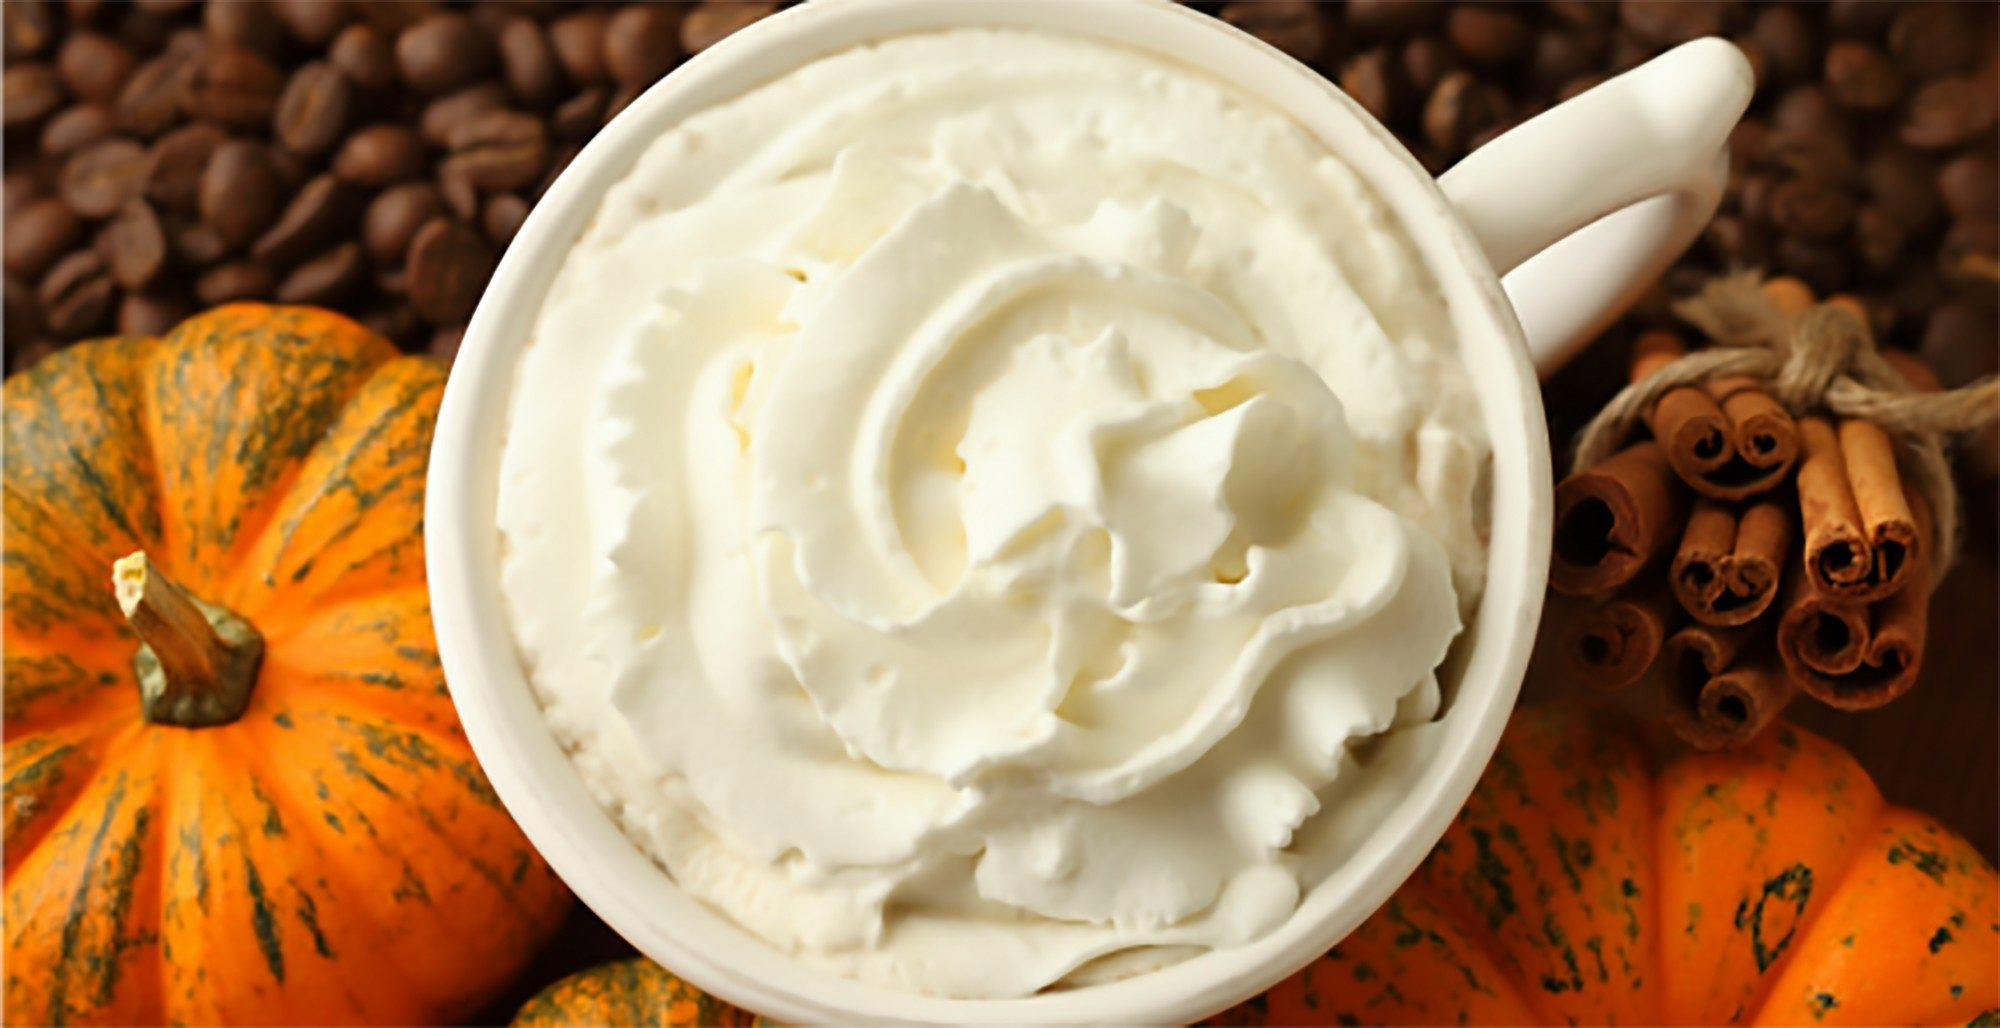 Starbucks has sold more 200 million Pumpkin Spice Lattes since their introduction in 2003.